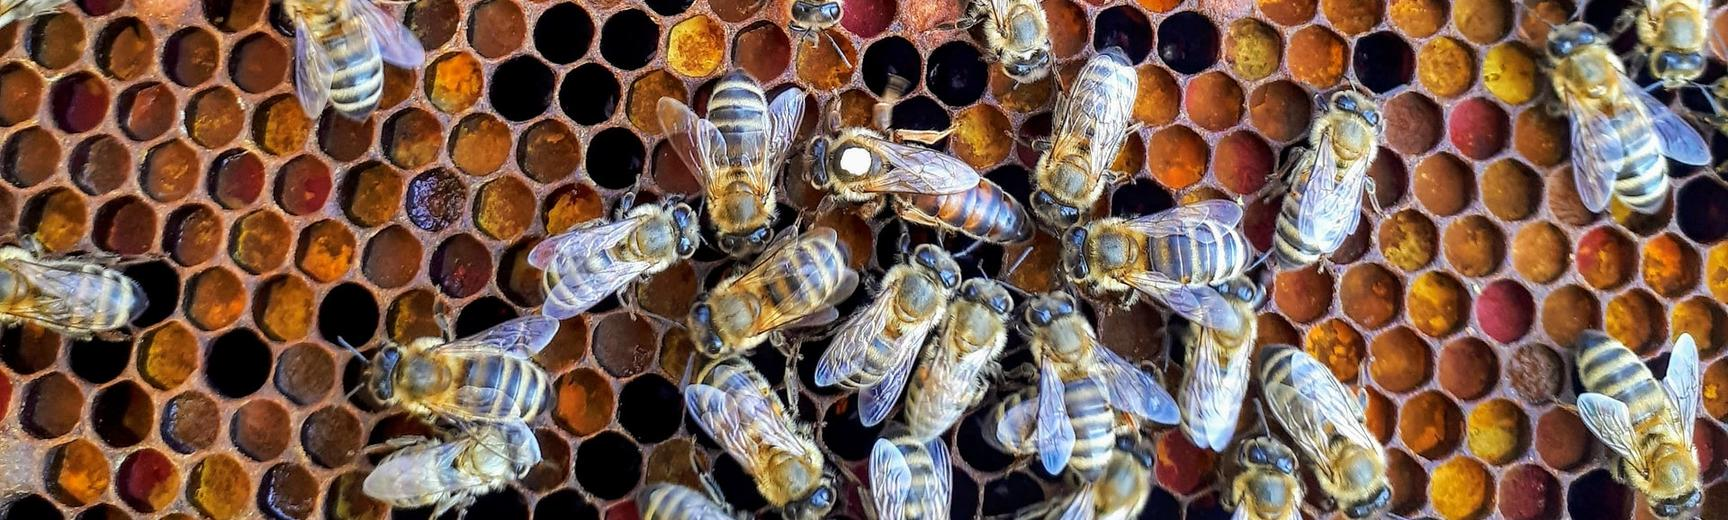 Image of bees taken by Boba Jaglicic